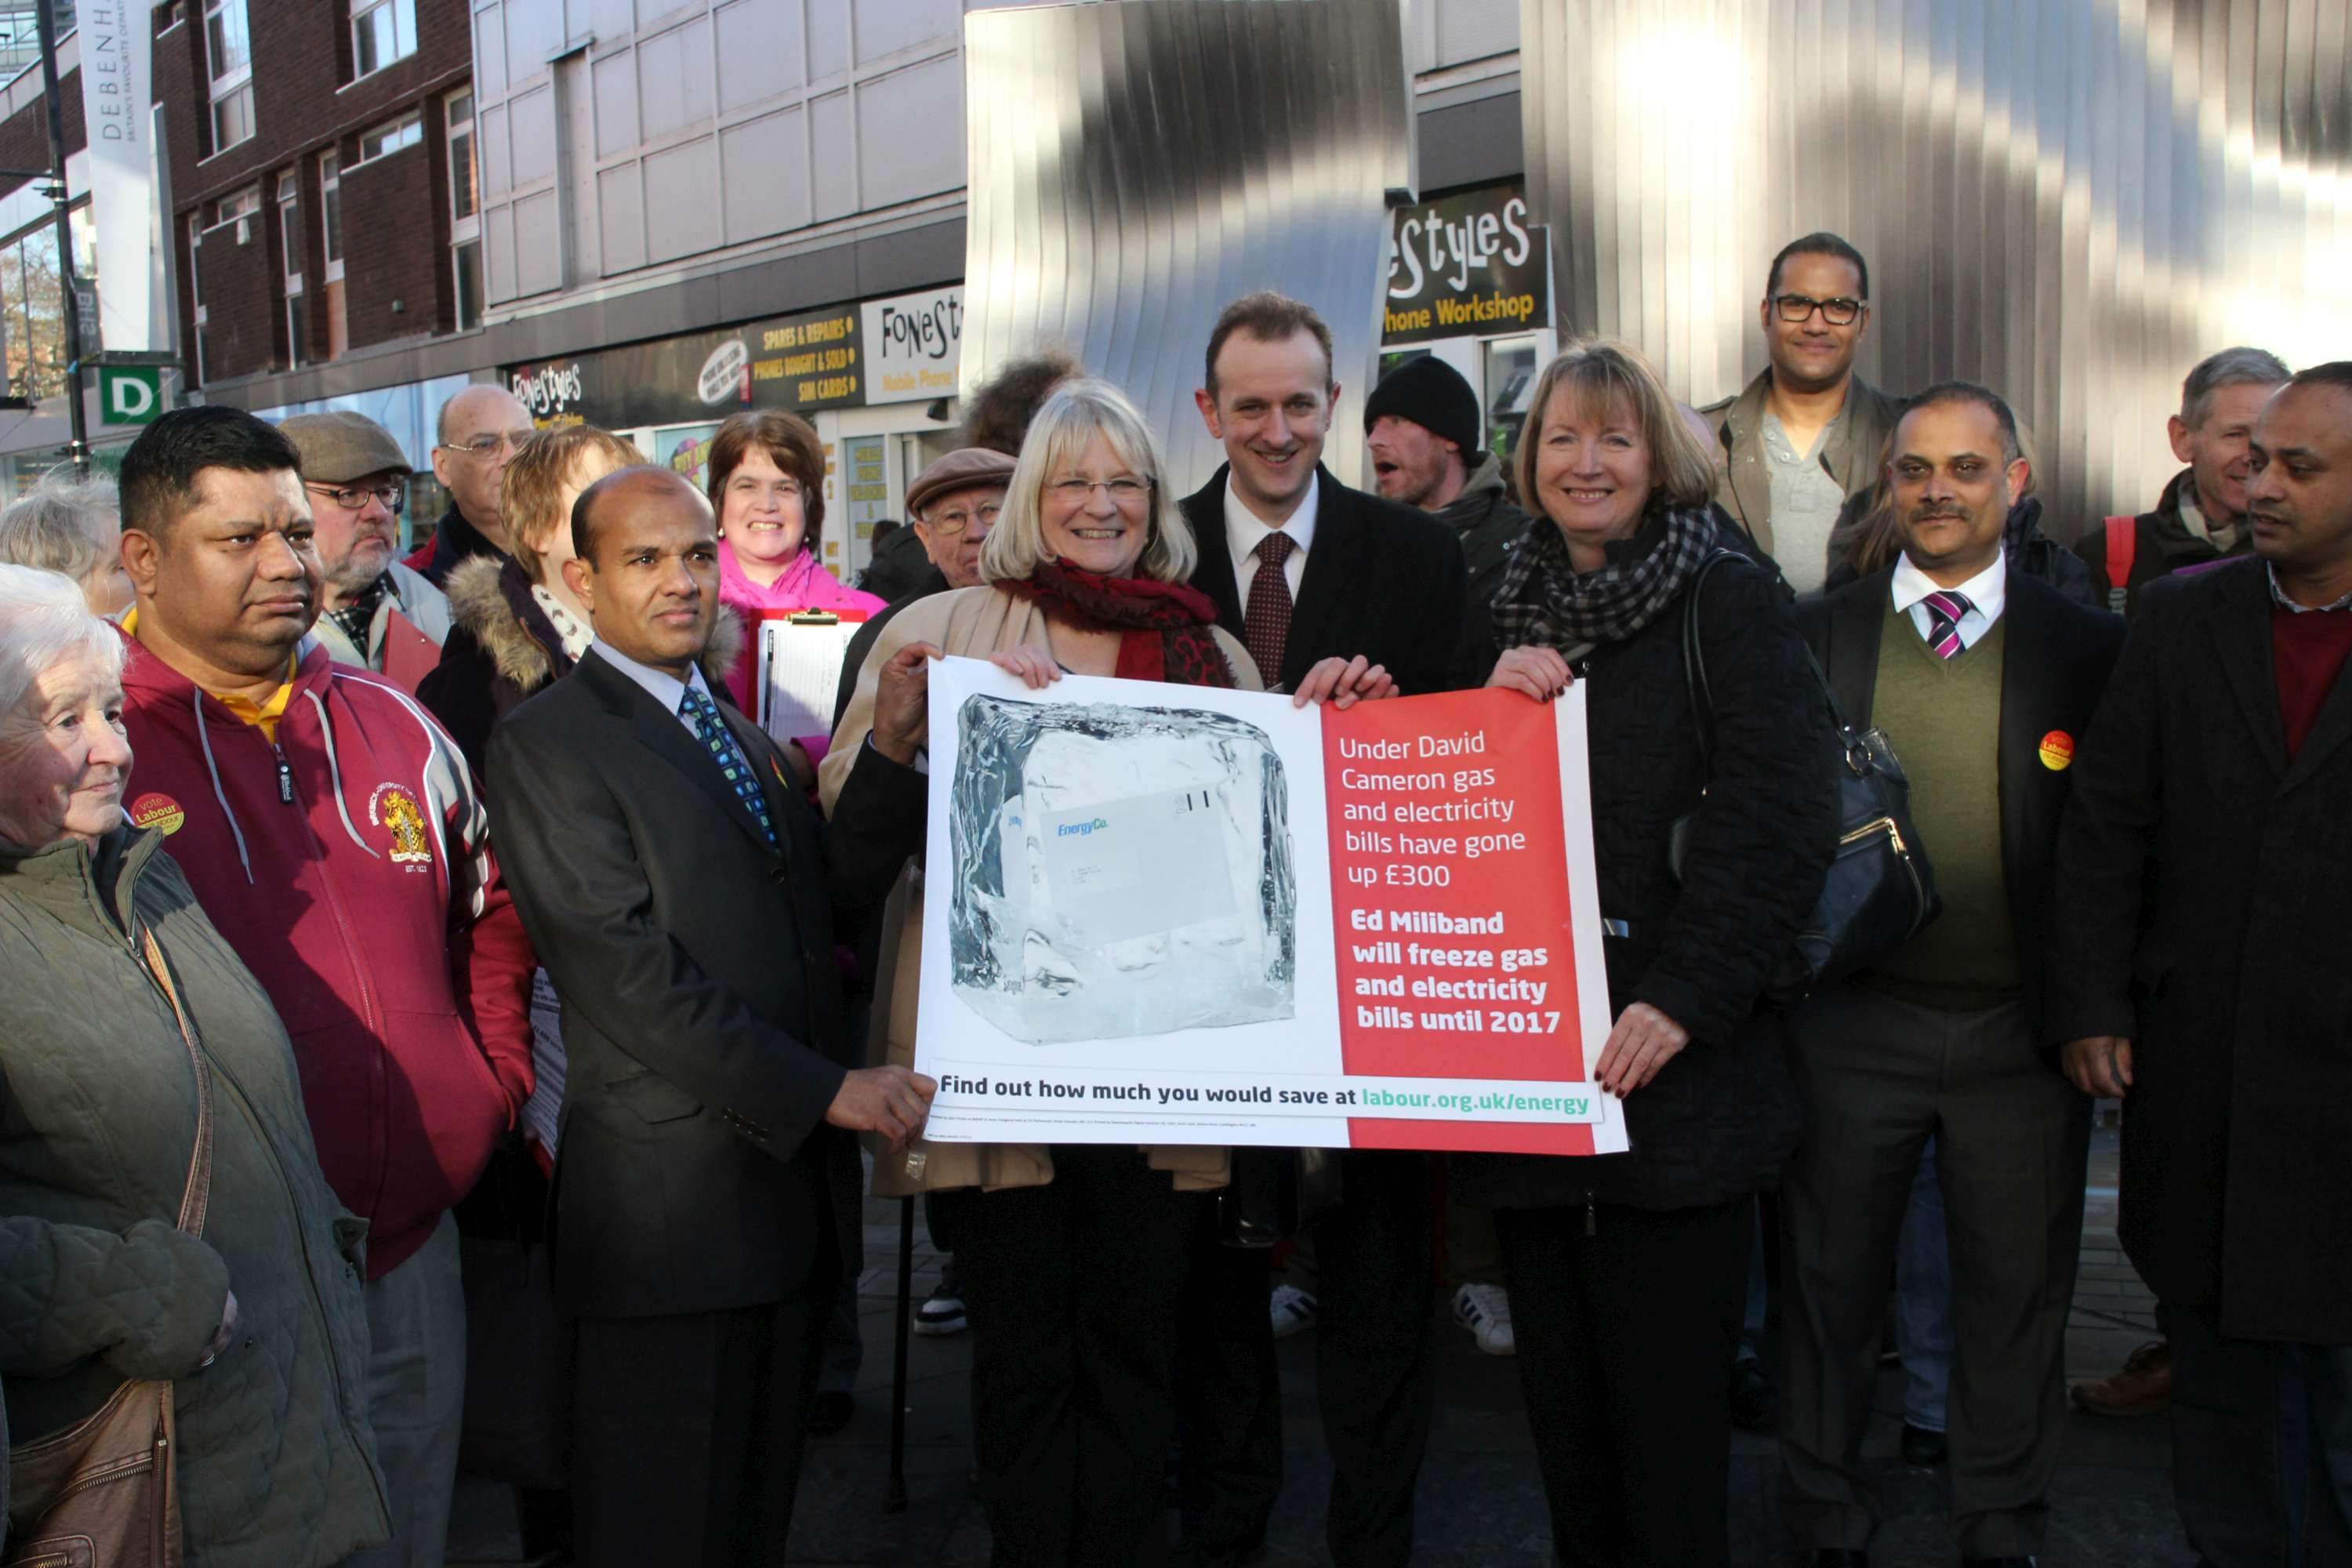 Swindon_Cost_of_Living_campaign_with_HH.jpg